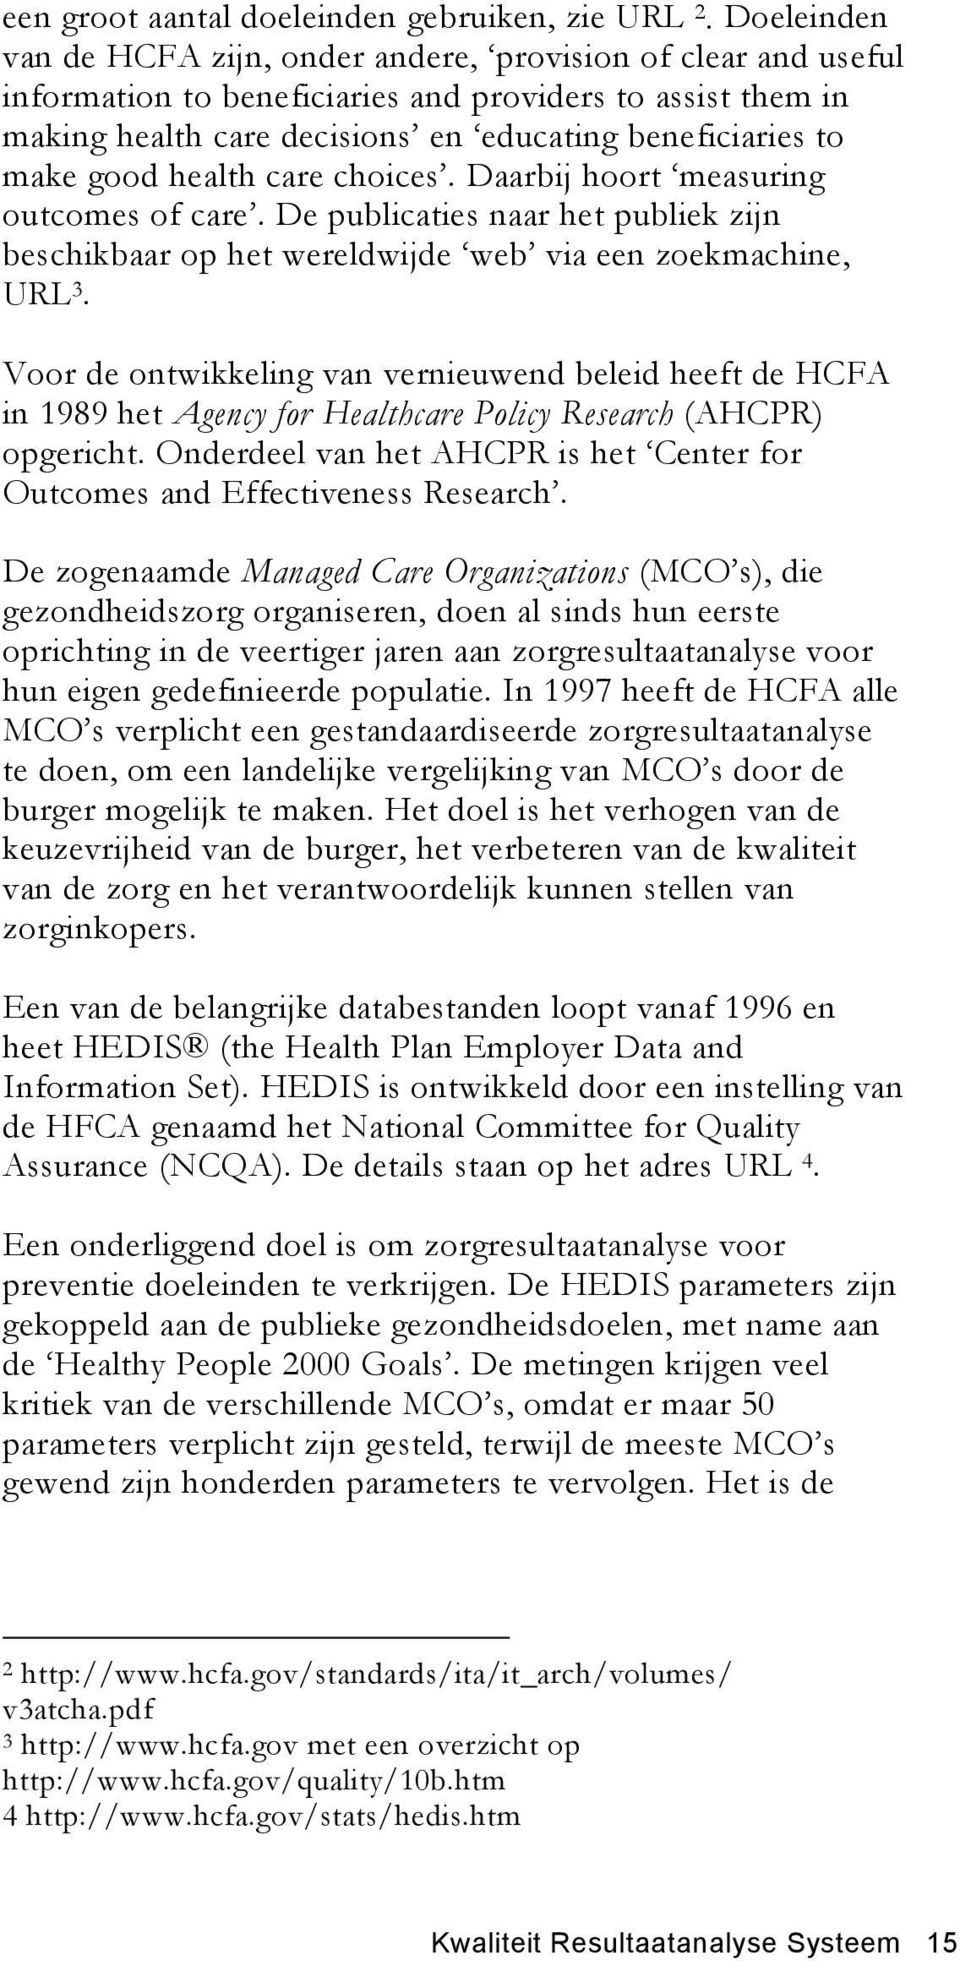 good health care choices. Daarbij hoort measuring outcomes of care. De publicaties naar het publiek zijn beschikbaar op het wereldwijde web via een zoekmachine, URL 3.